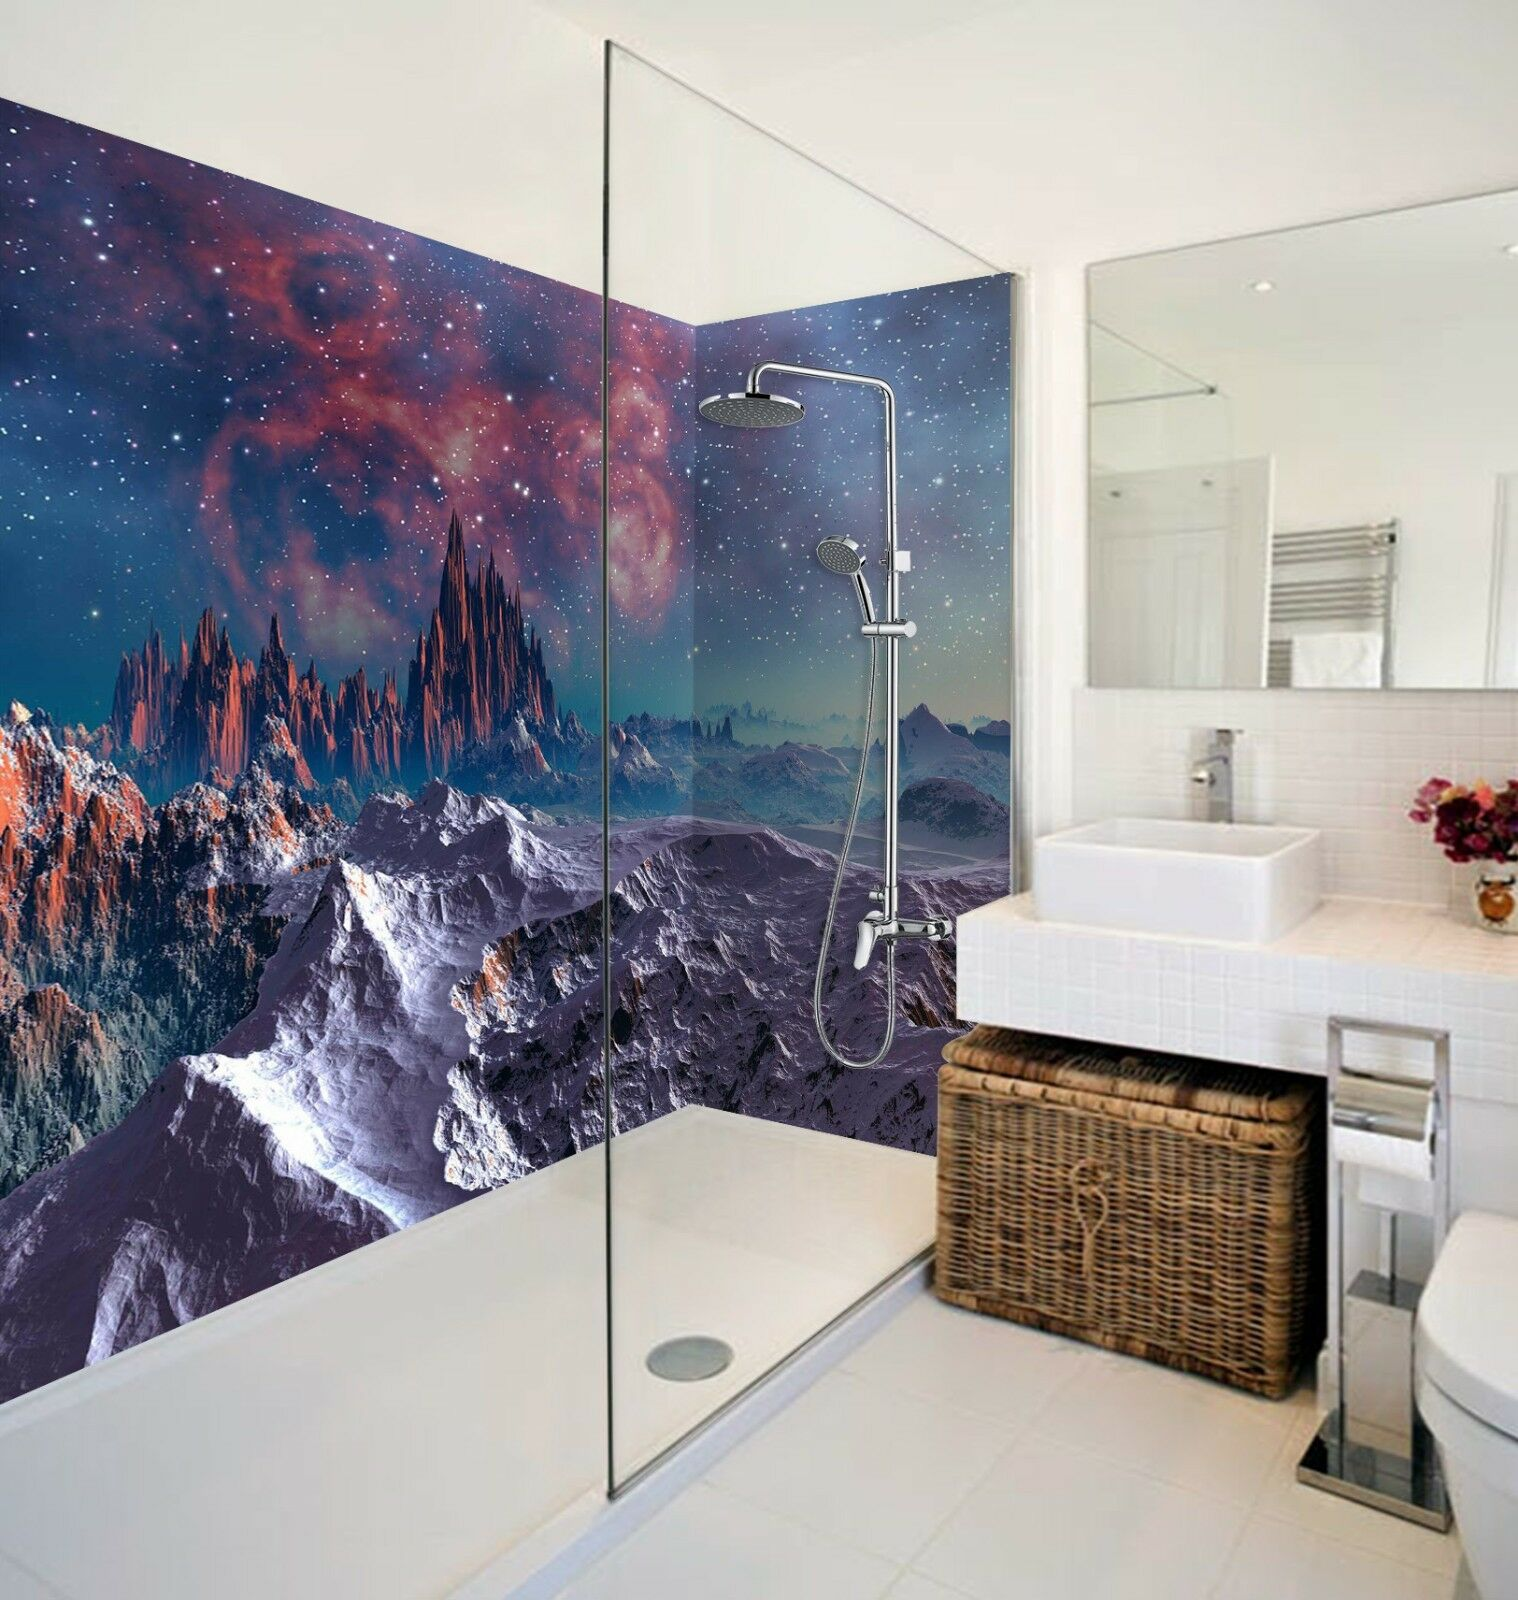 3D Starry sky hill 507 WallPaper Bathroom Print Decal Wall Deco AJ WALLPAPER UK